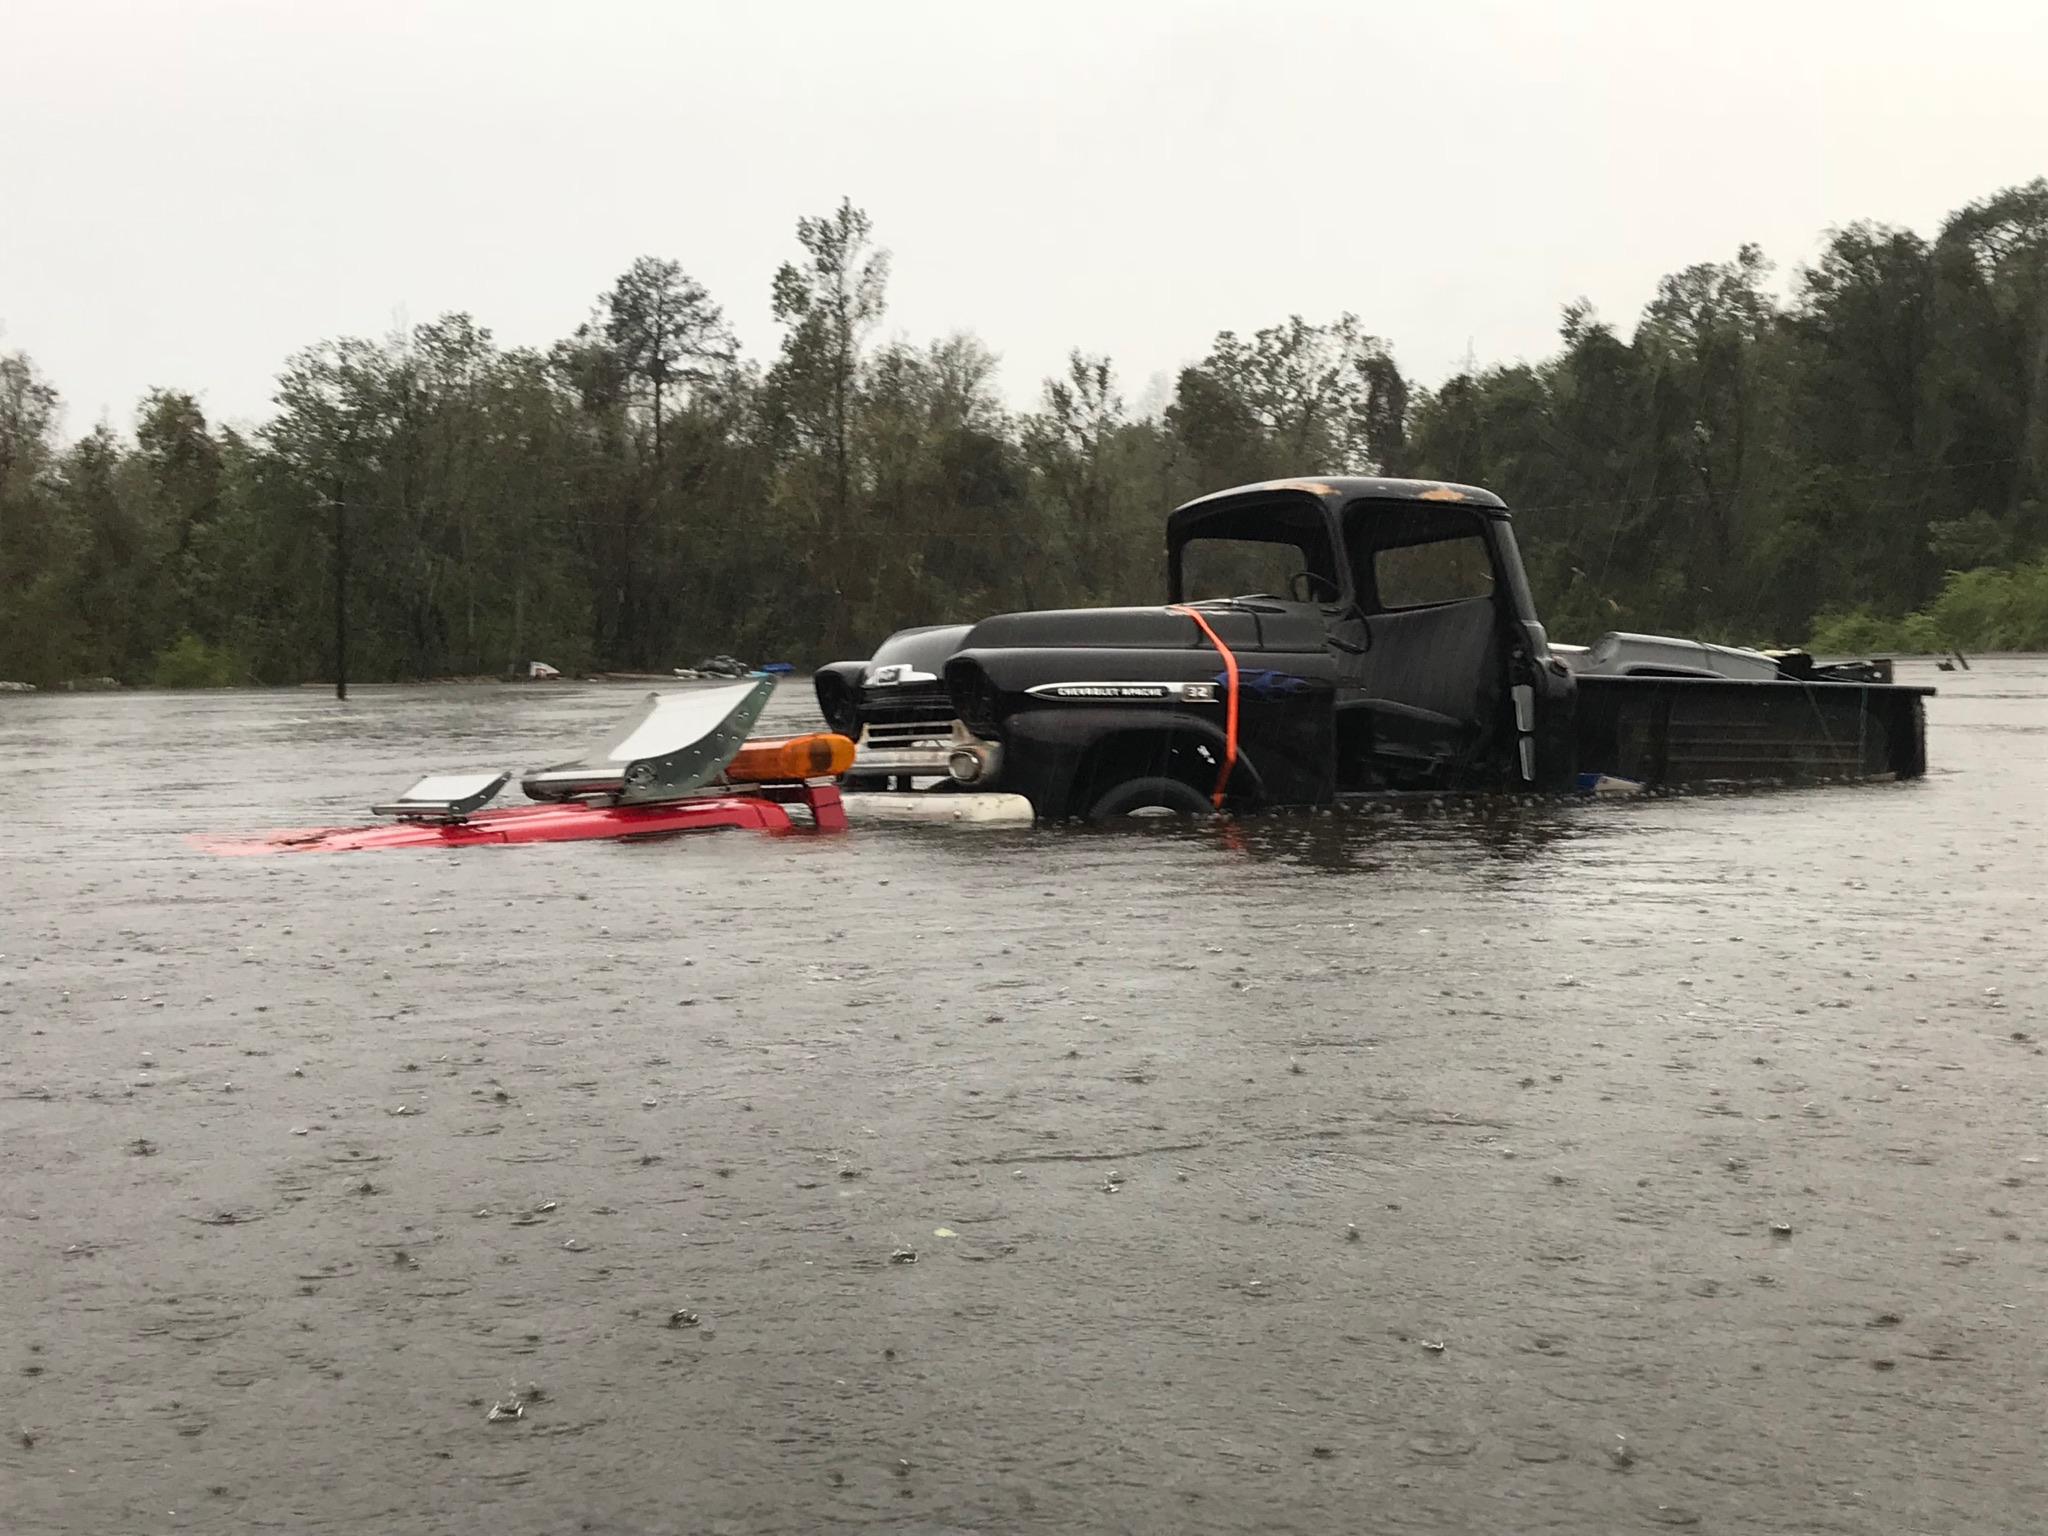 "<div class=""meta image-caption""><div class=""origin-logo origin-image wtvd""><span>WTVD</span></div><span class=""caption-text"">A tow truck is stranded in the floodwaters of Jacksonville, N.C. (ABC11 Eyewitness - Kaycie Burns)</span></div>"